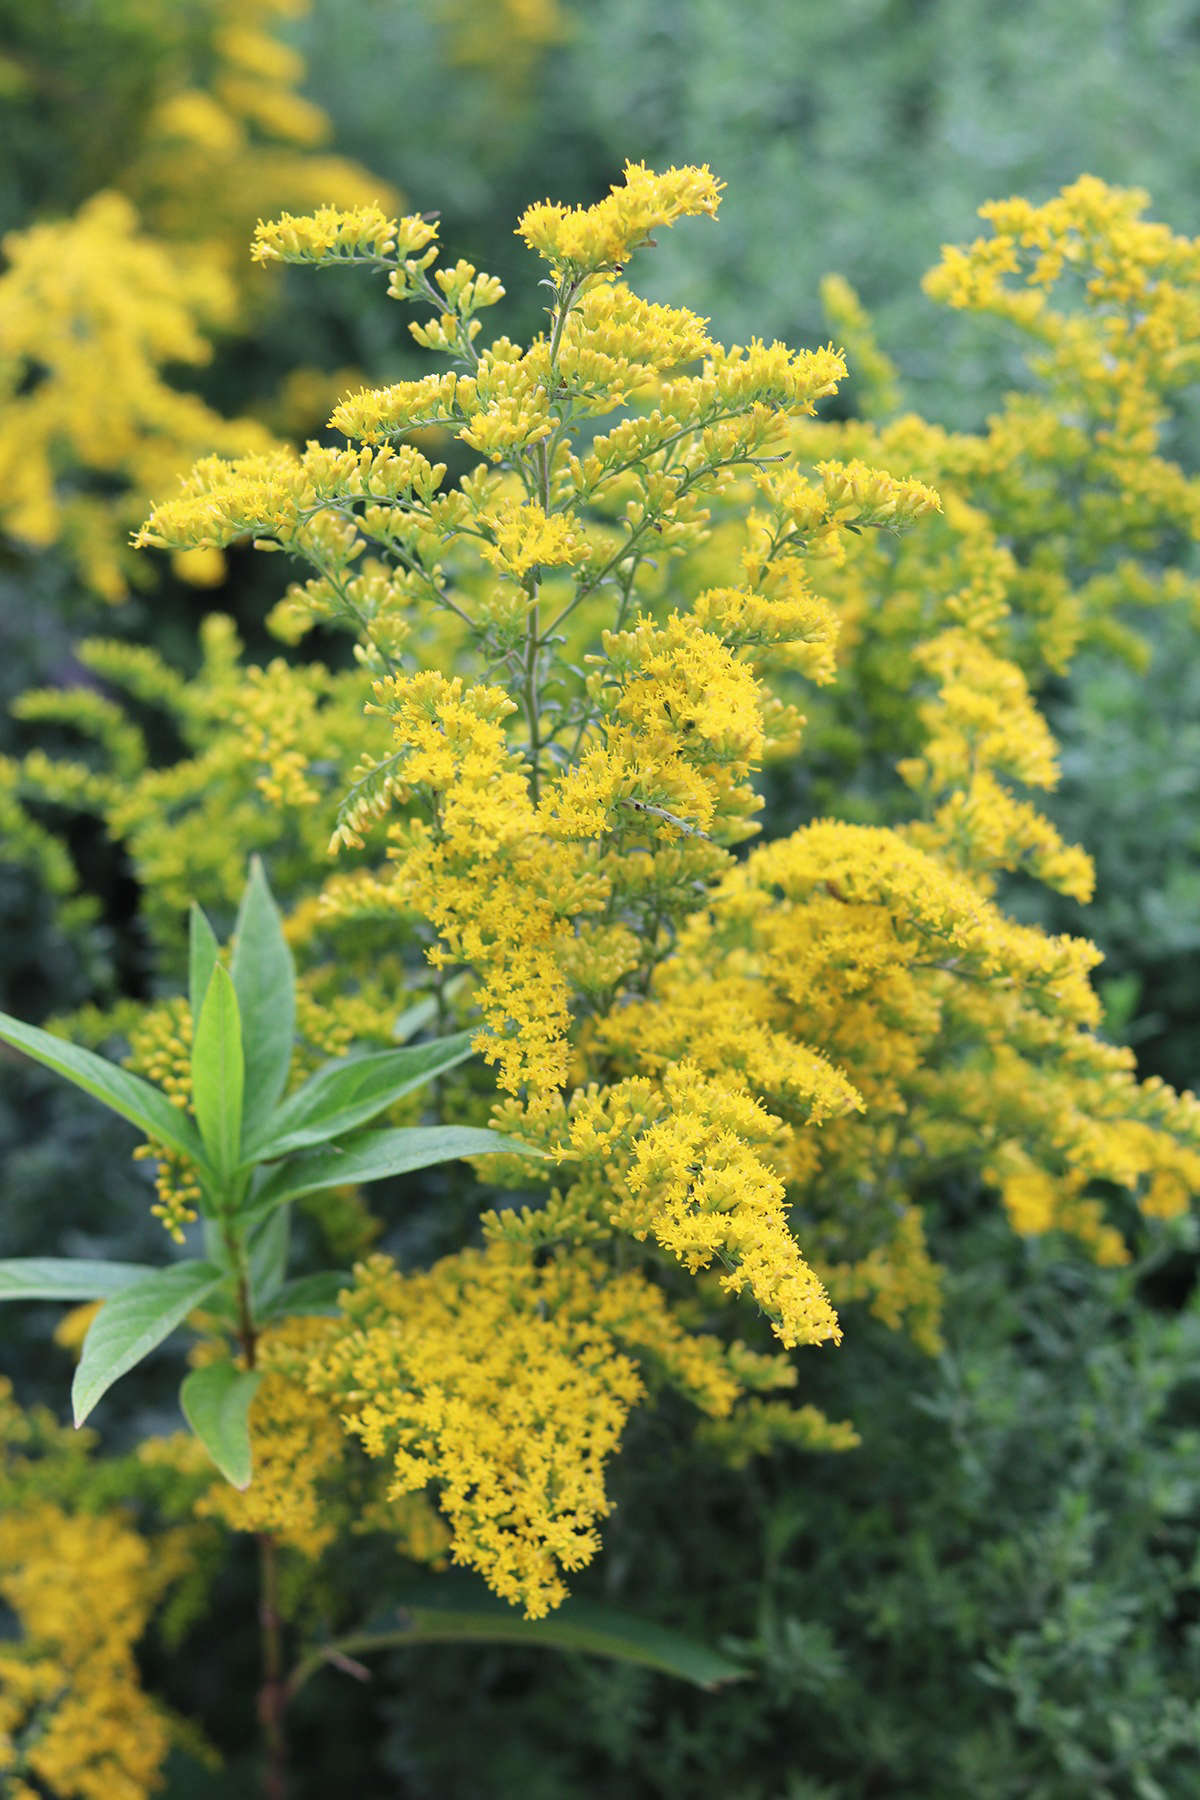 The flowers of gray goldenrod are easy to collect: simply strip them from the cut stalk, and collect in a small bag or bowl. They can be used fresh or as a dried herb. The later green and ripe seeds also have very interesting food potential.